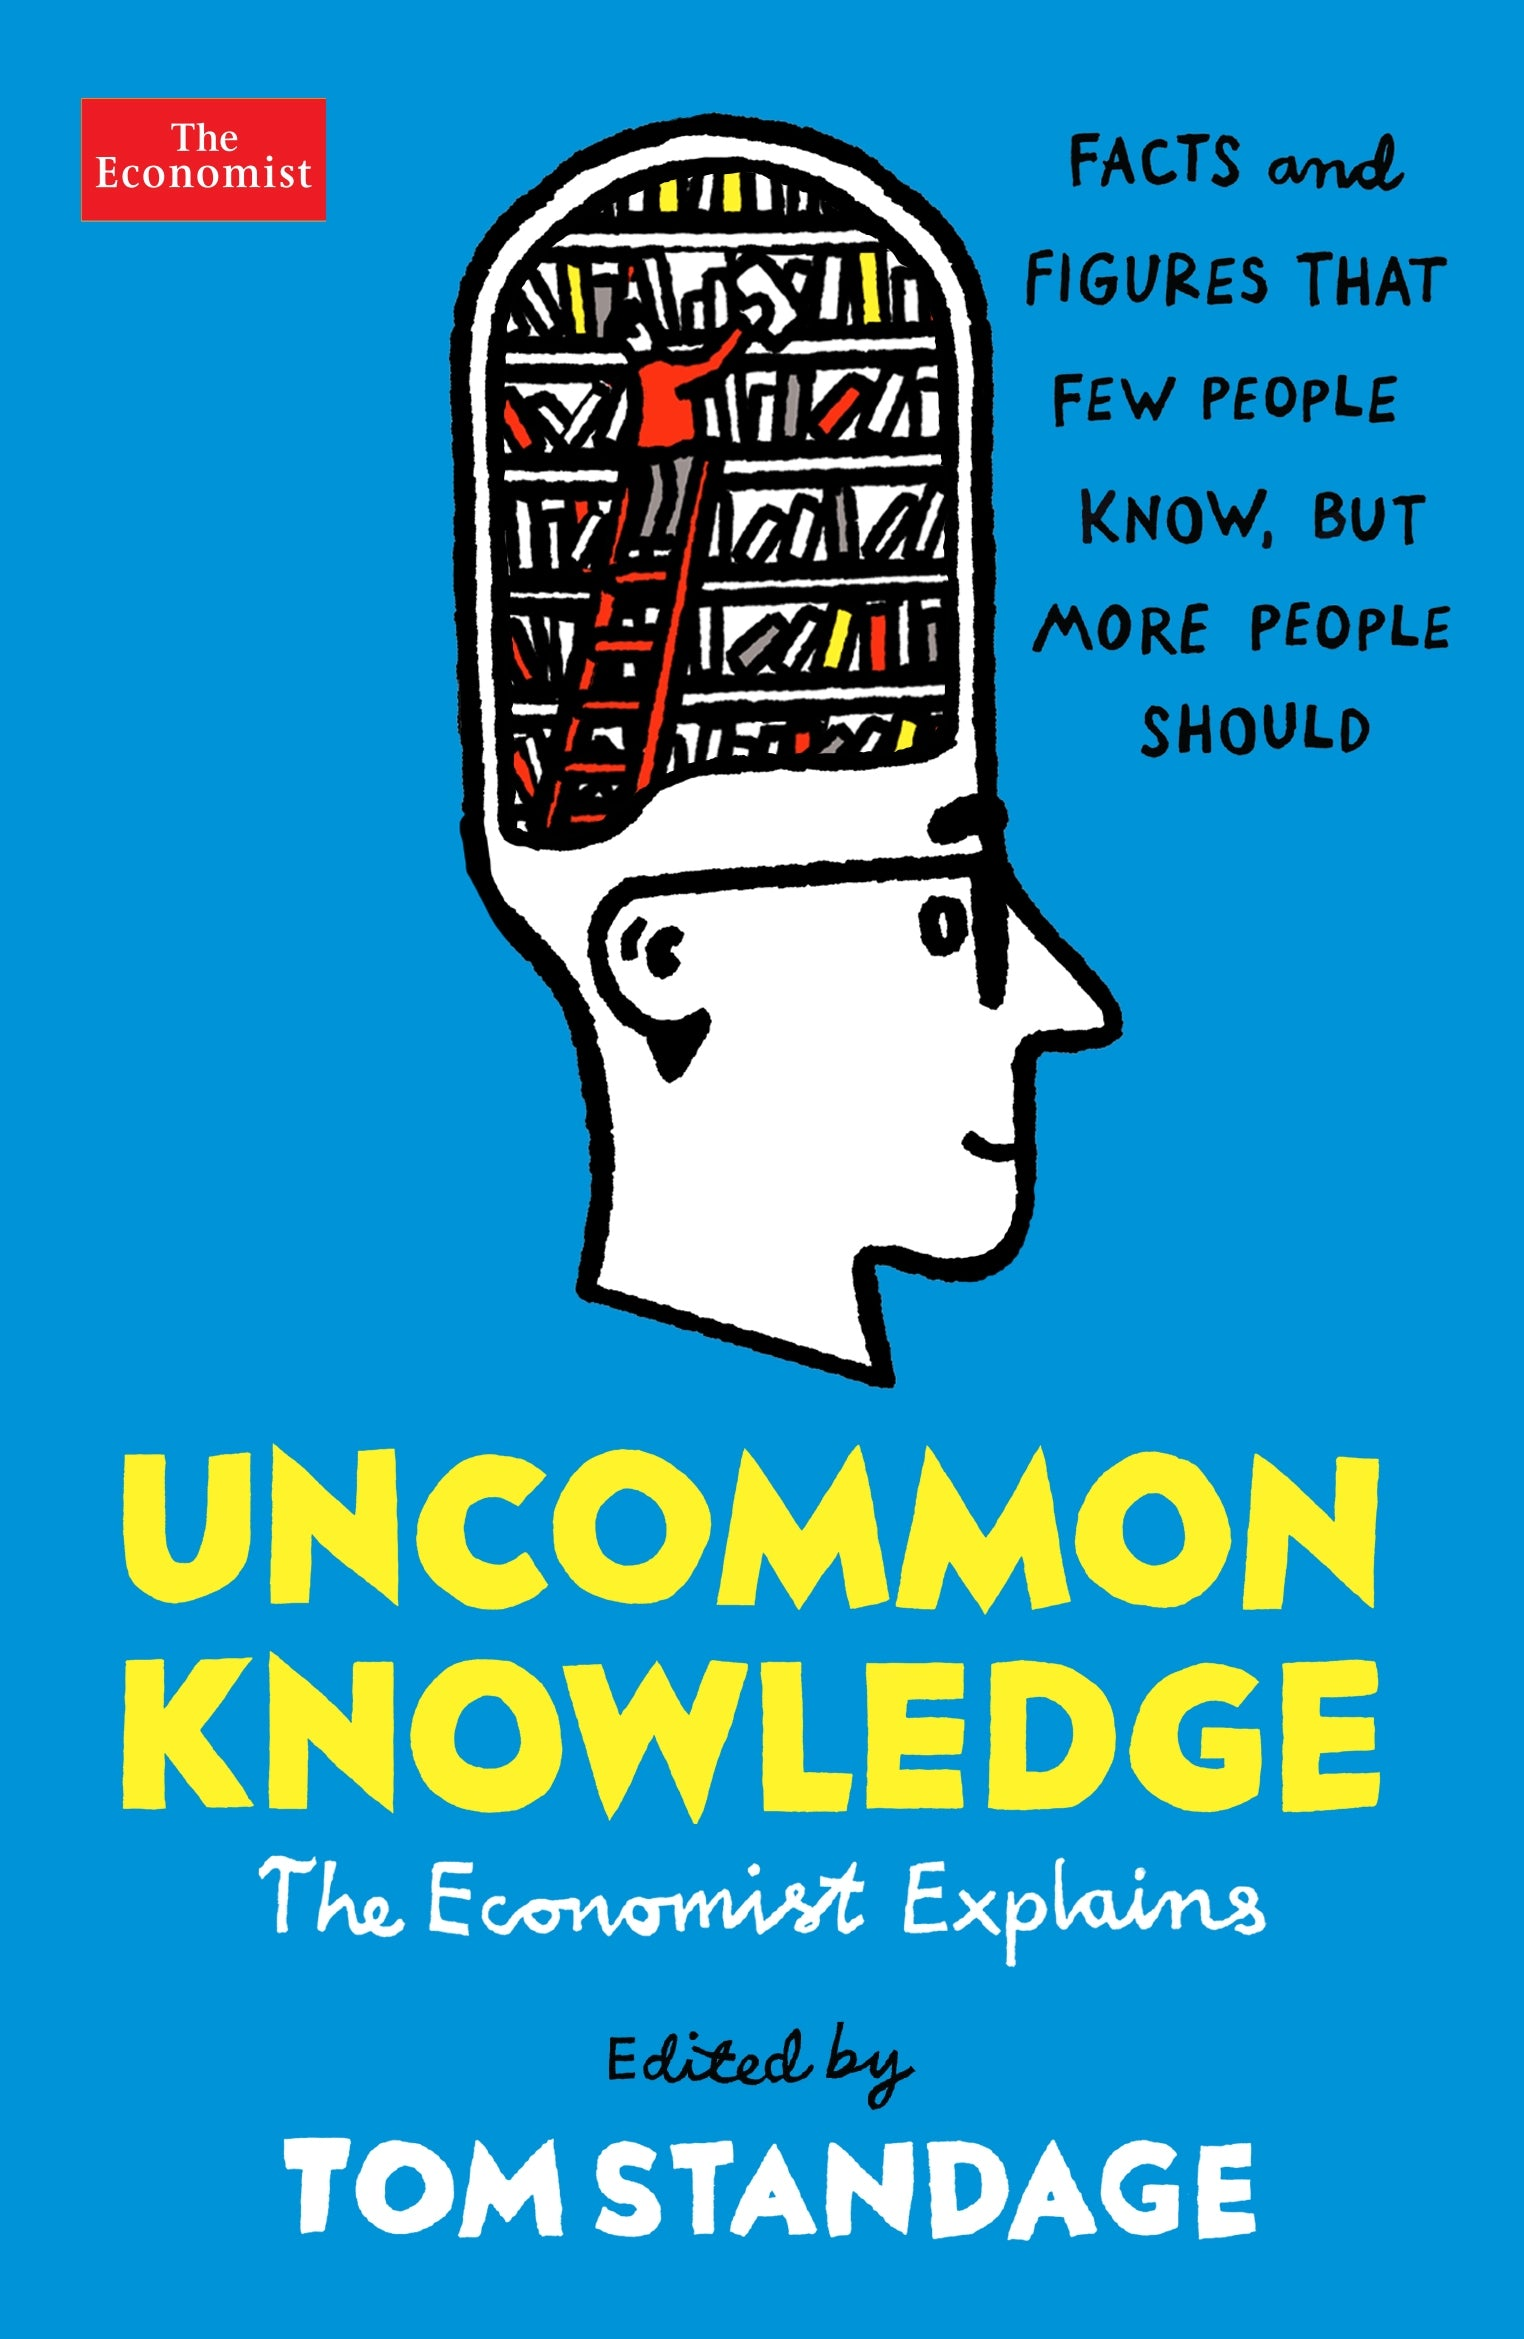 Uncommon Knowledge by Tom Standage